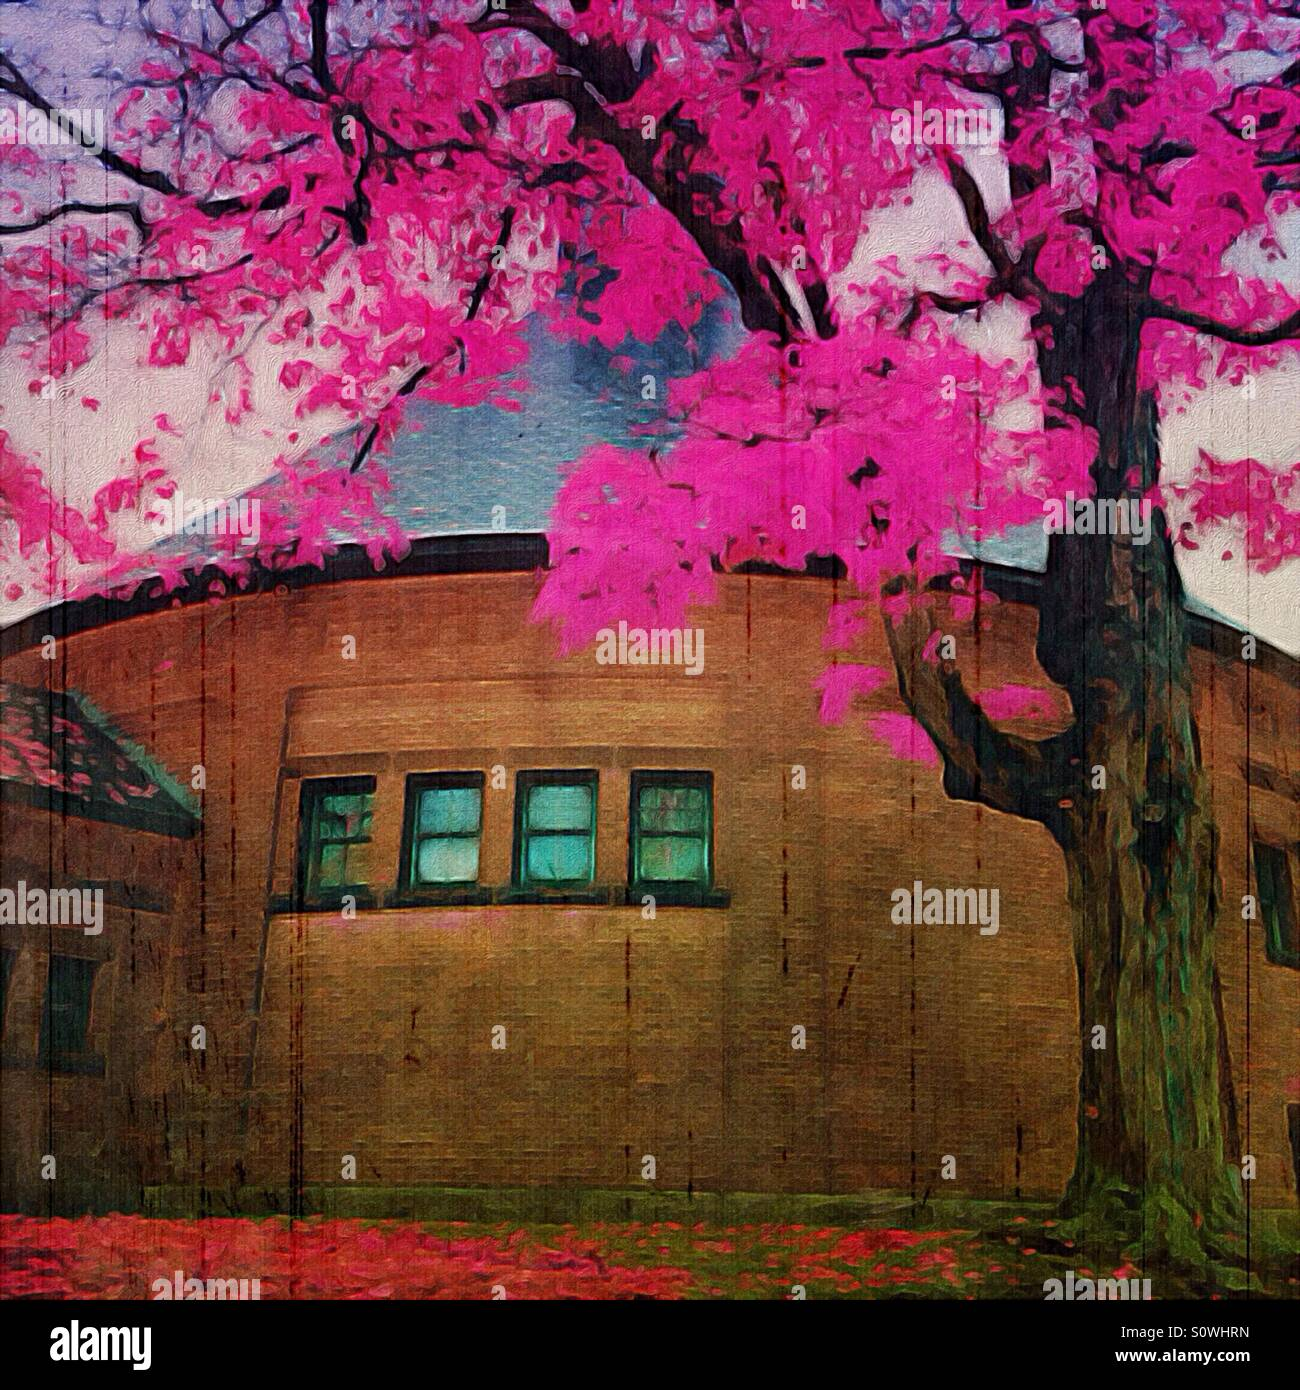 Round Building with Pink Flowering Tree - Stock Image